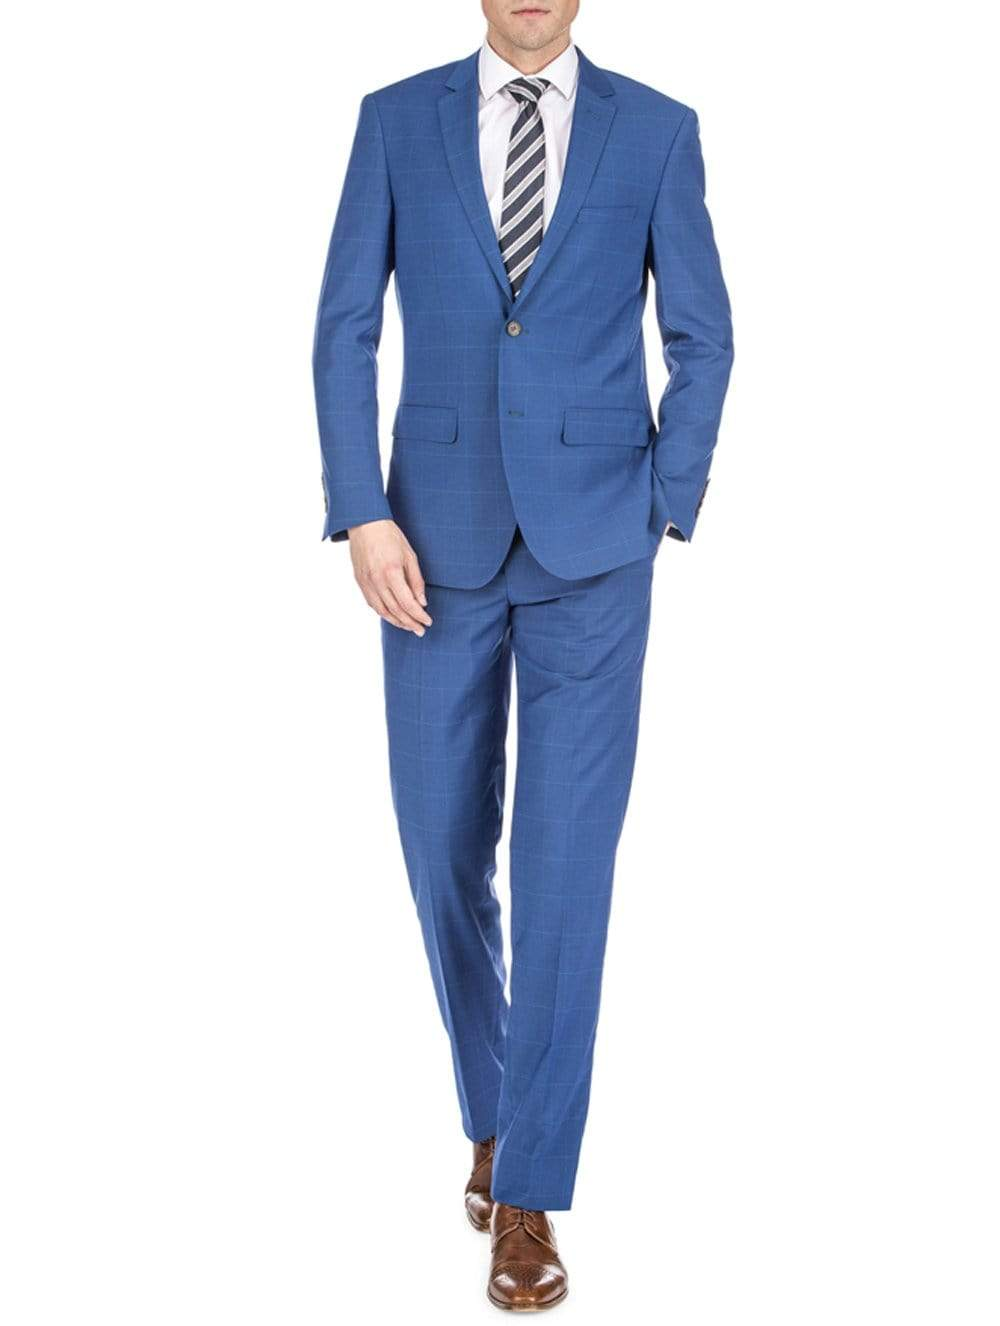 DAILY HAUTE Men's Suits INDIGO / 36Rx30W Gino Vitale Men's Traveler Check Slim Fit Suits